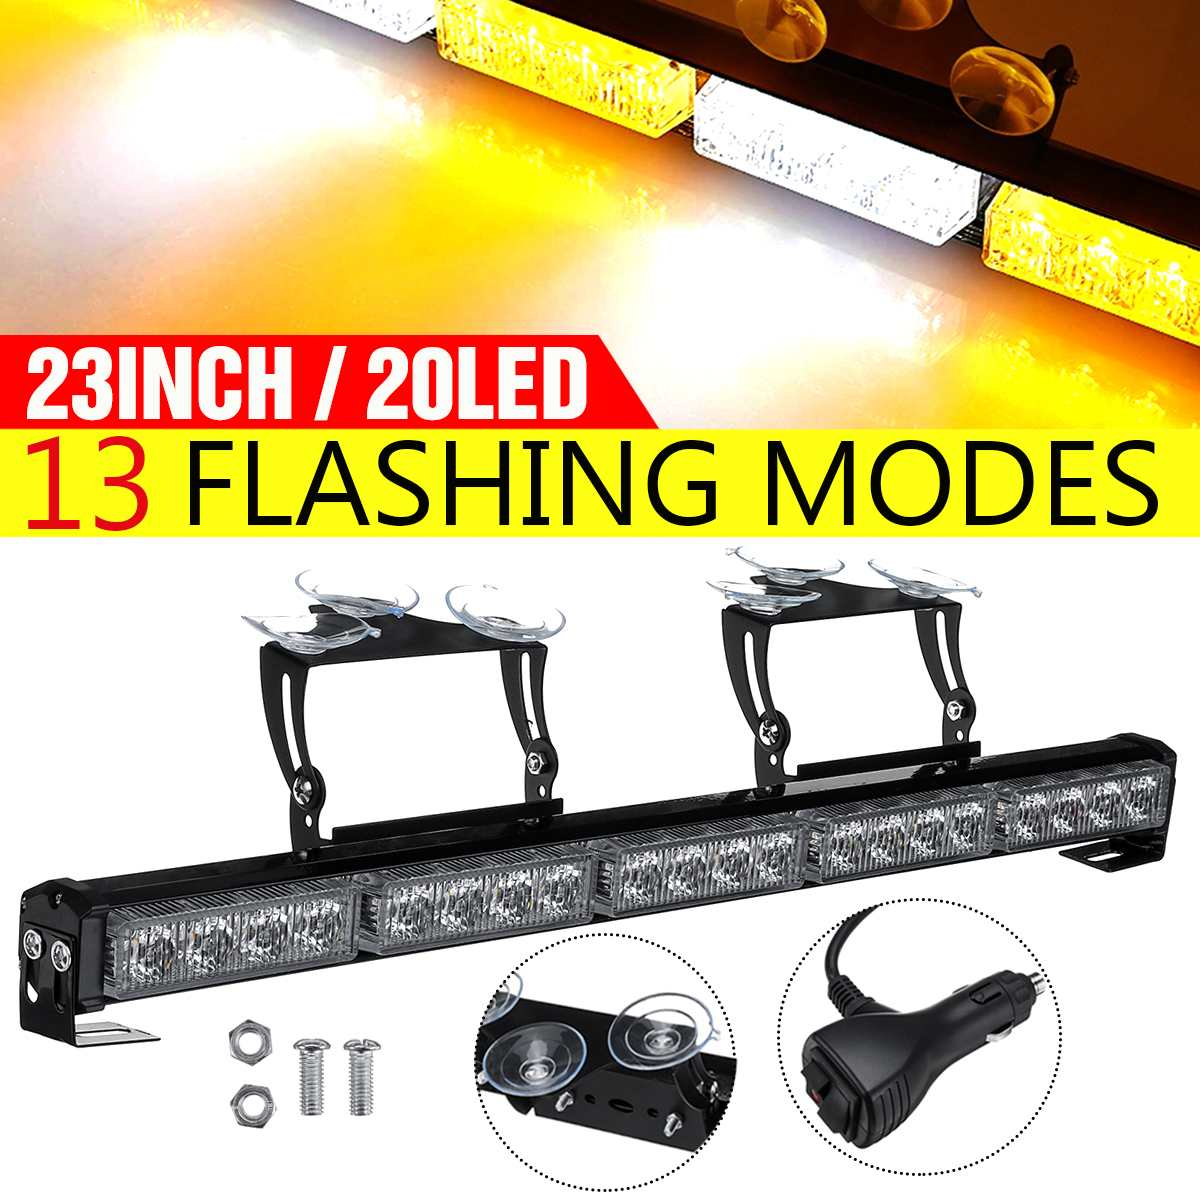 "23"" Car Truck Emergency Warning LED Strobe Light Bar with Suction Cups and Mounting Brackets 13 Flashing Modes Emergency Lights"